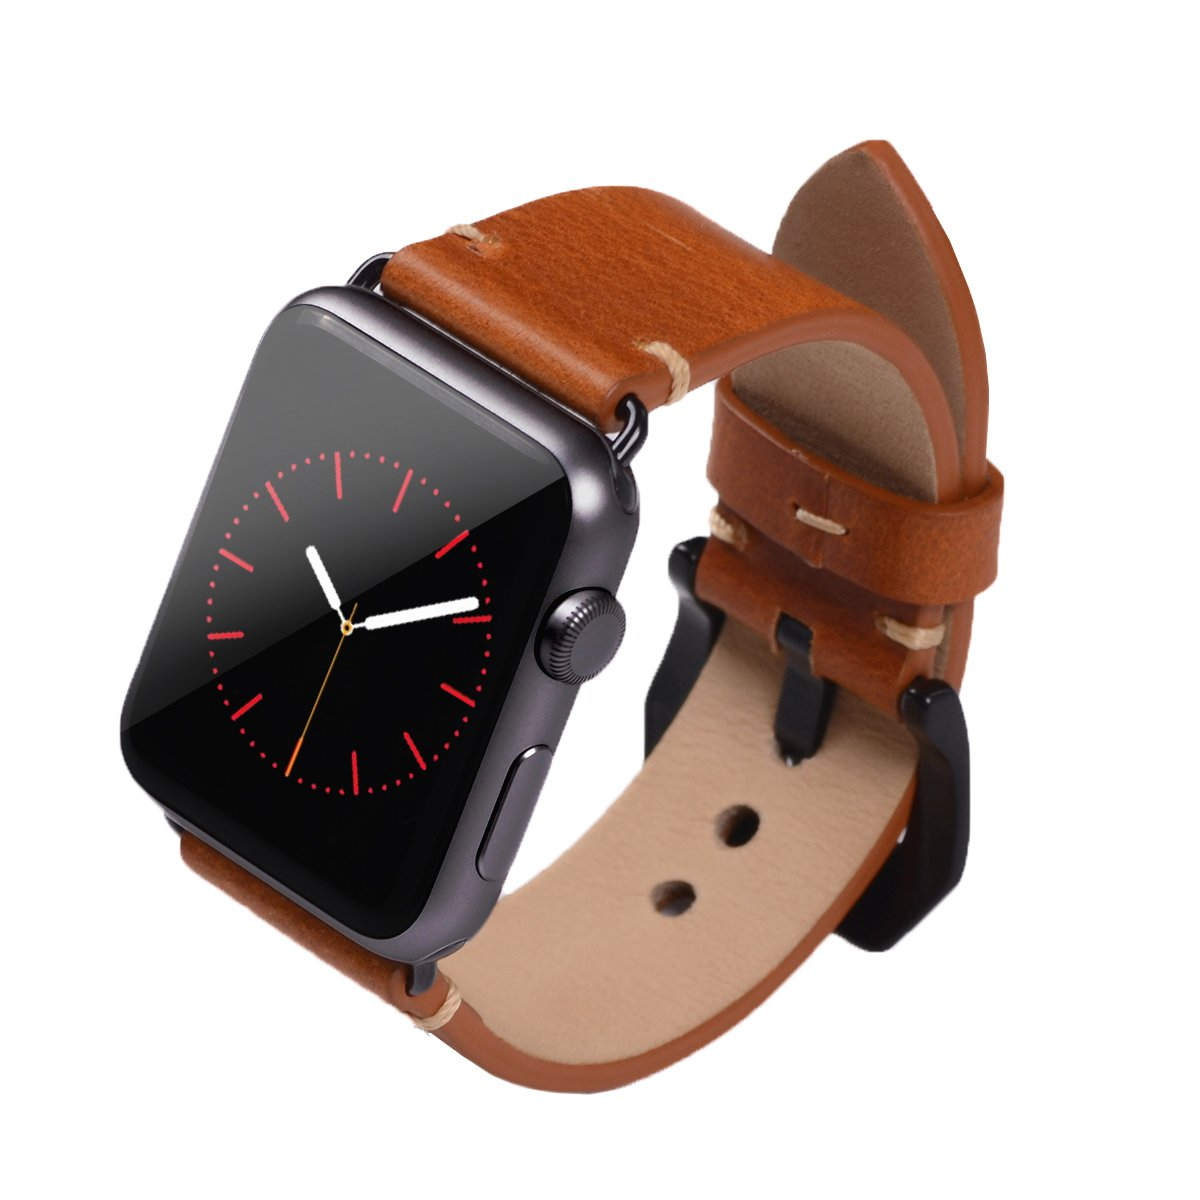 Apple Watch Band ,Vintage Vegetable Tanned Leather Watch Band For I Watch 42mm With Black Adaptor Light Brown 0